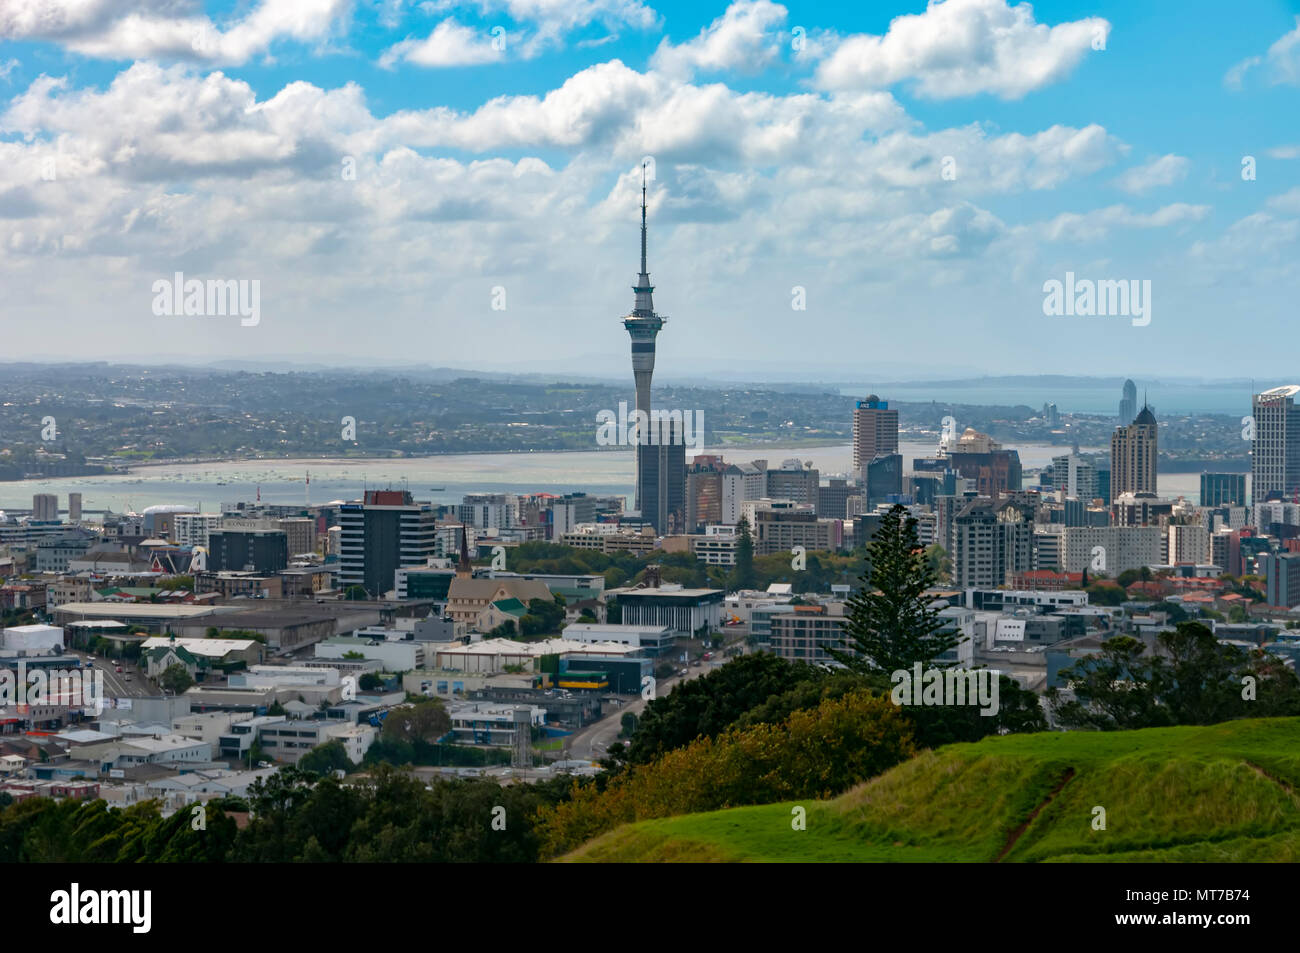 Mount Eden, Auckland, North Island, New Zealand - Stock Image